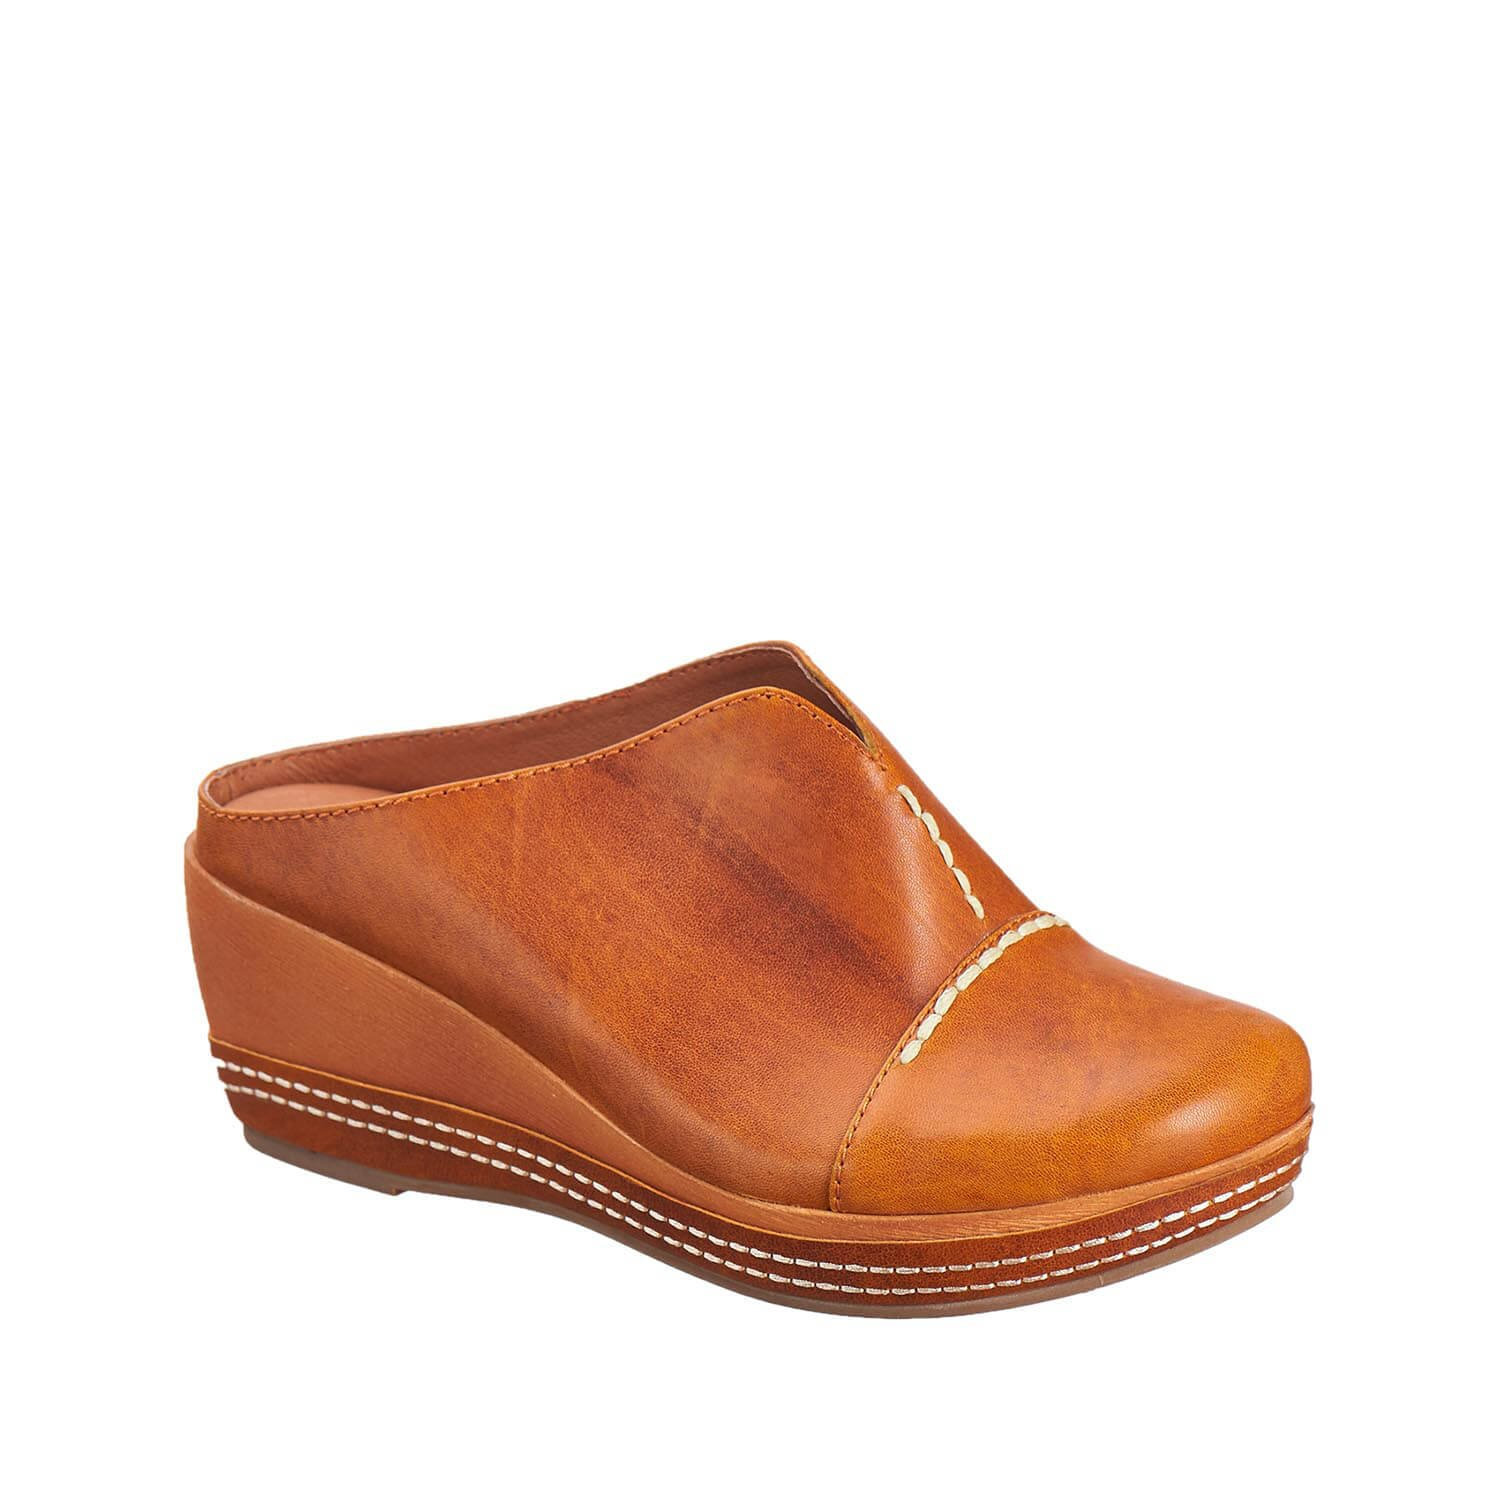 Antelope Women's 420 Tobacco Leather Lower Stitched Clog 38